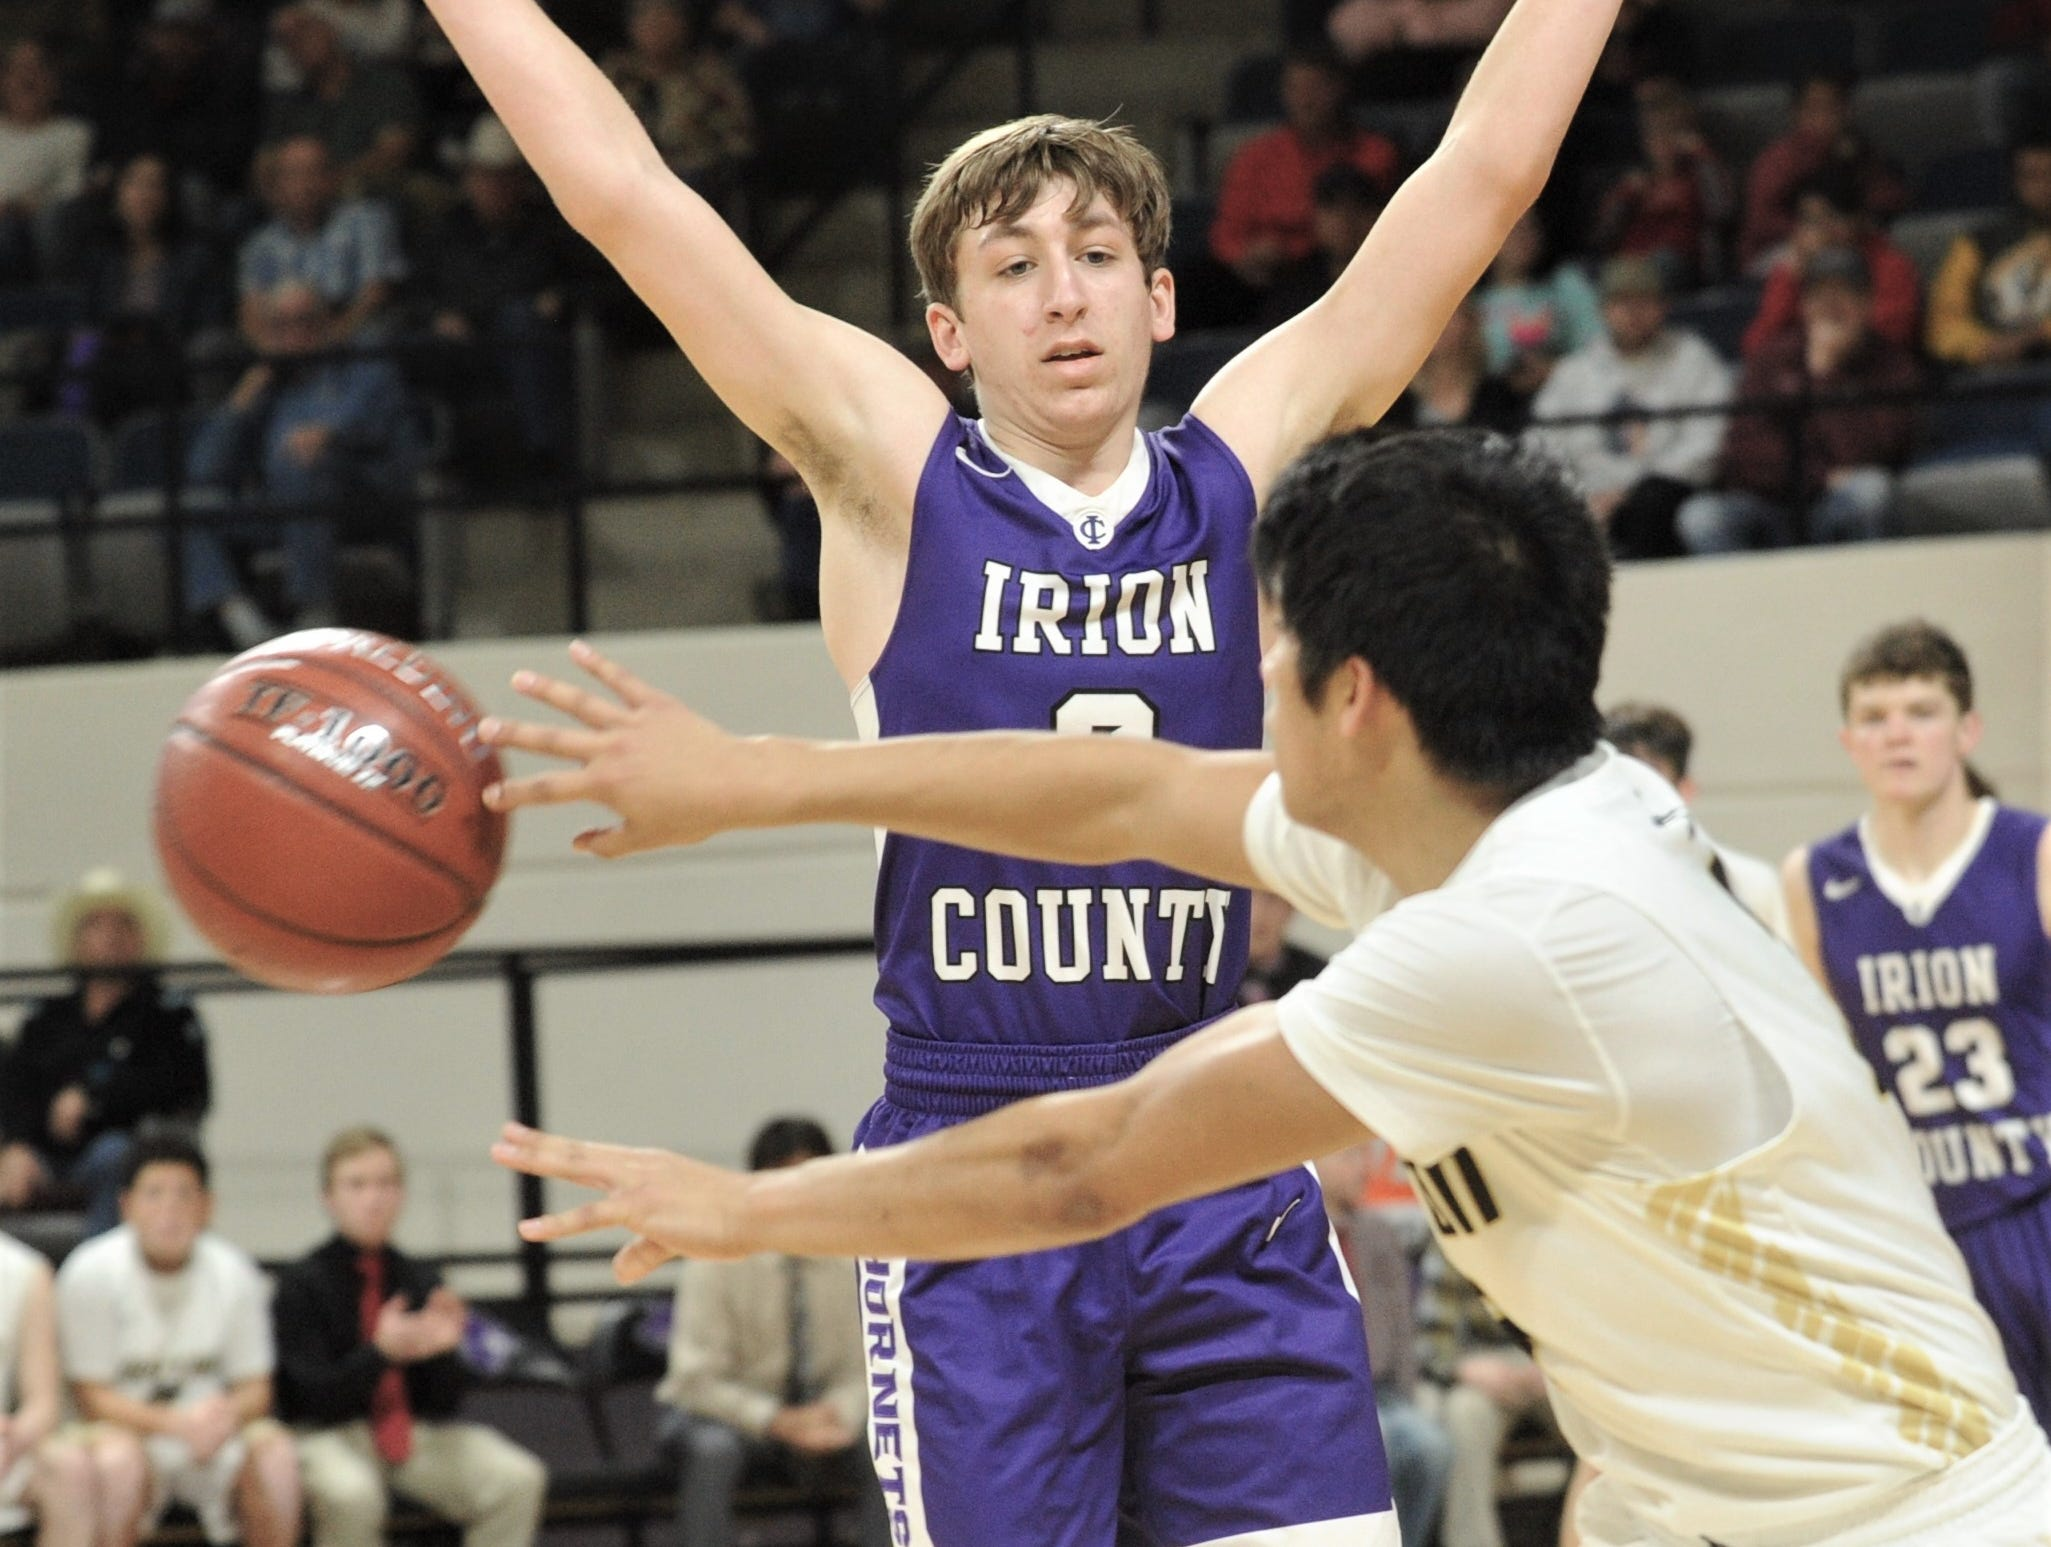 Jayton's Aaron Hernandez passes the ball around Irion County's Kaden Councilman. The Jaybirds beat Irion County 47-32 in the Region II-1A championship game Saturday, March 2, 2019, at Abilene Christian's Moody Coliseum.